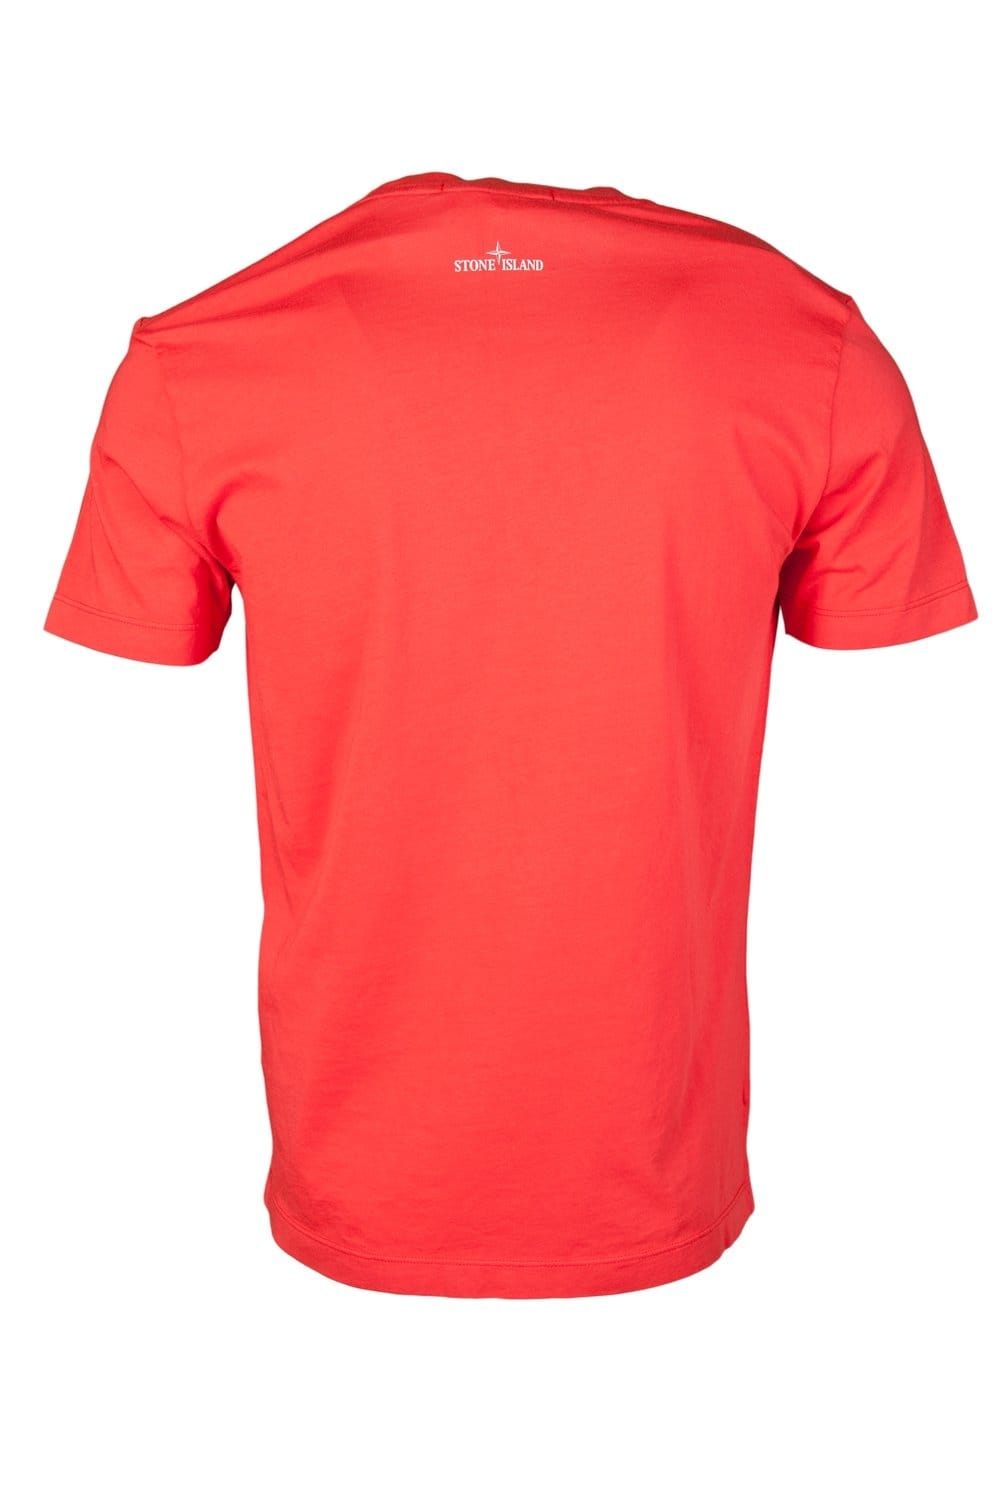 Stone Island Casual Designer T Shirt In Red Orange And